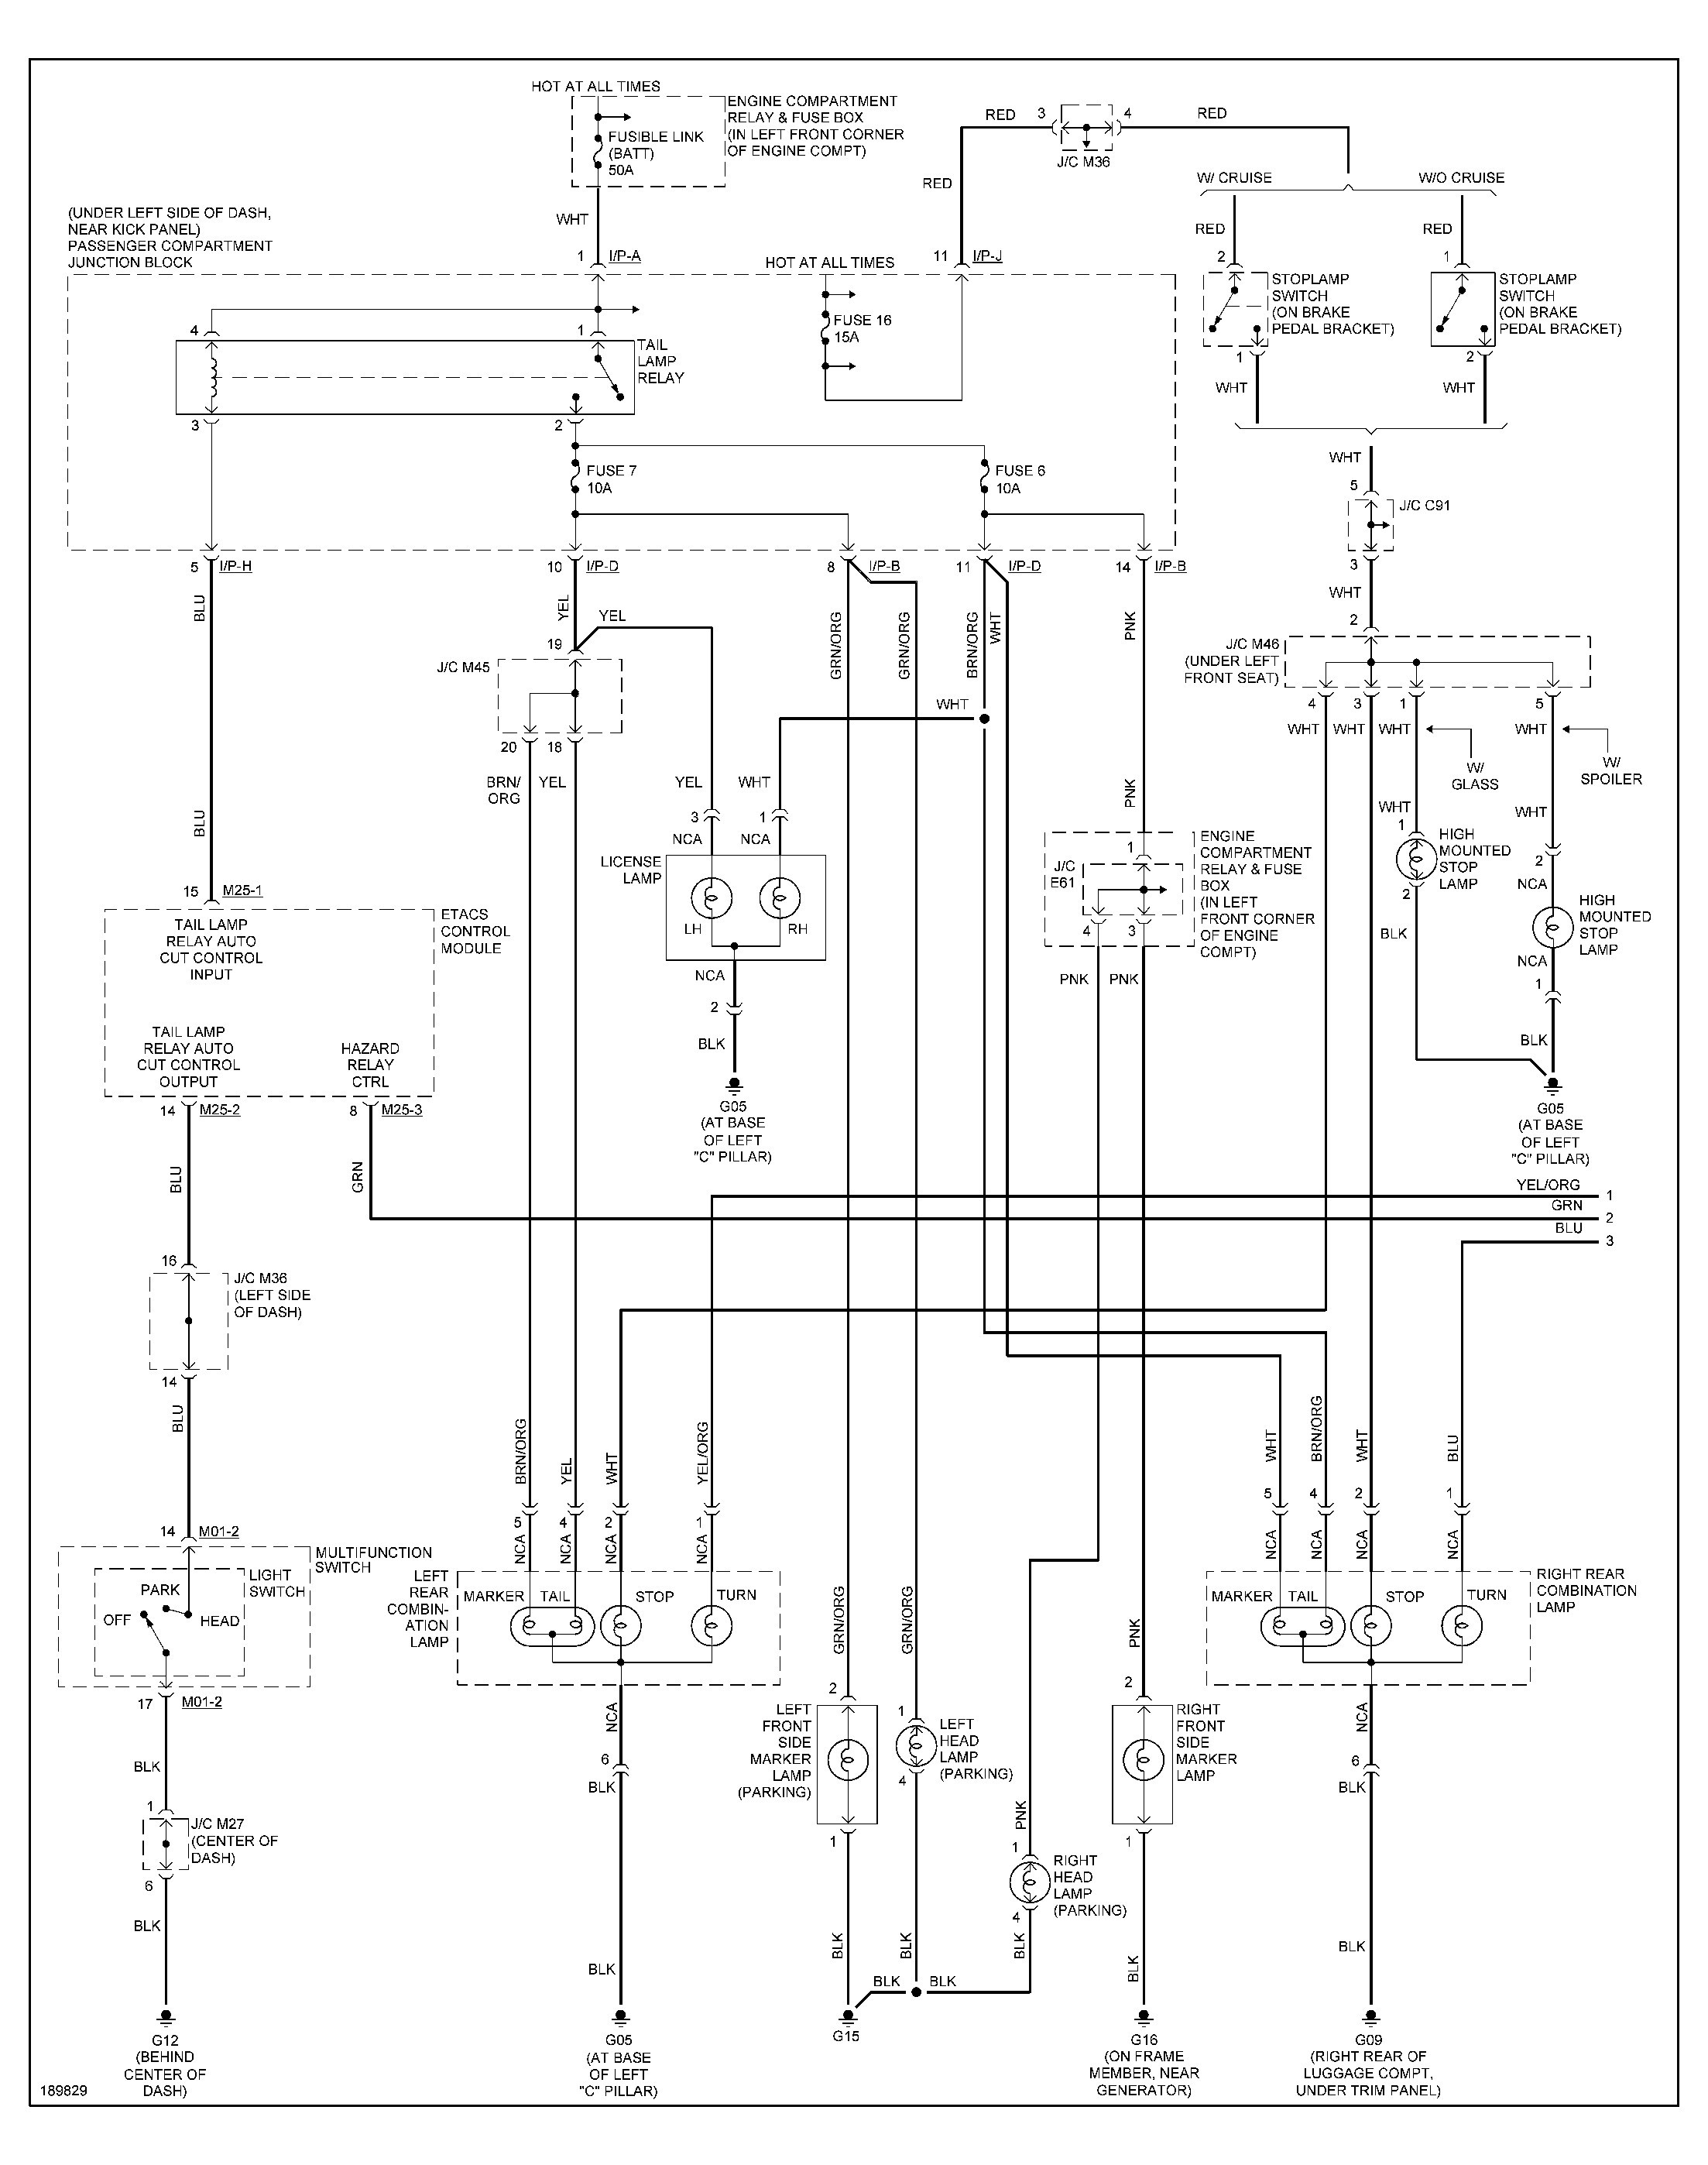 2012 hyundai accent wiring diagrams explore schematic wiring diagram 2000 hyundai sonata engine diagram explore schematic wiring diagram u2022 rh webwiringdiagram today hyundai accent wiring asfbconference2016 Image collections